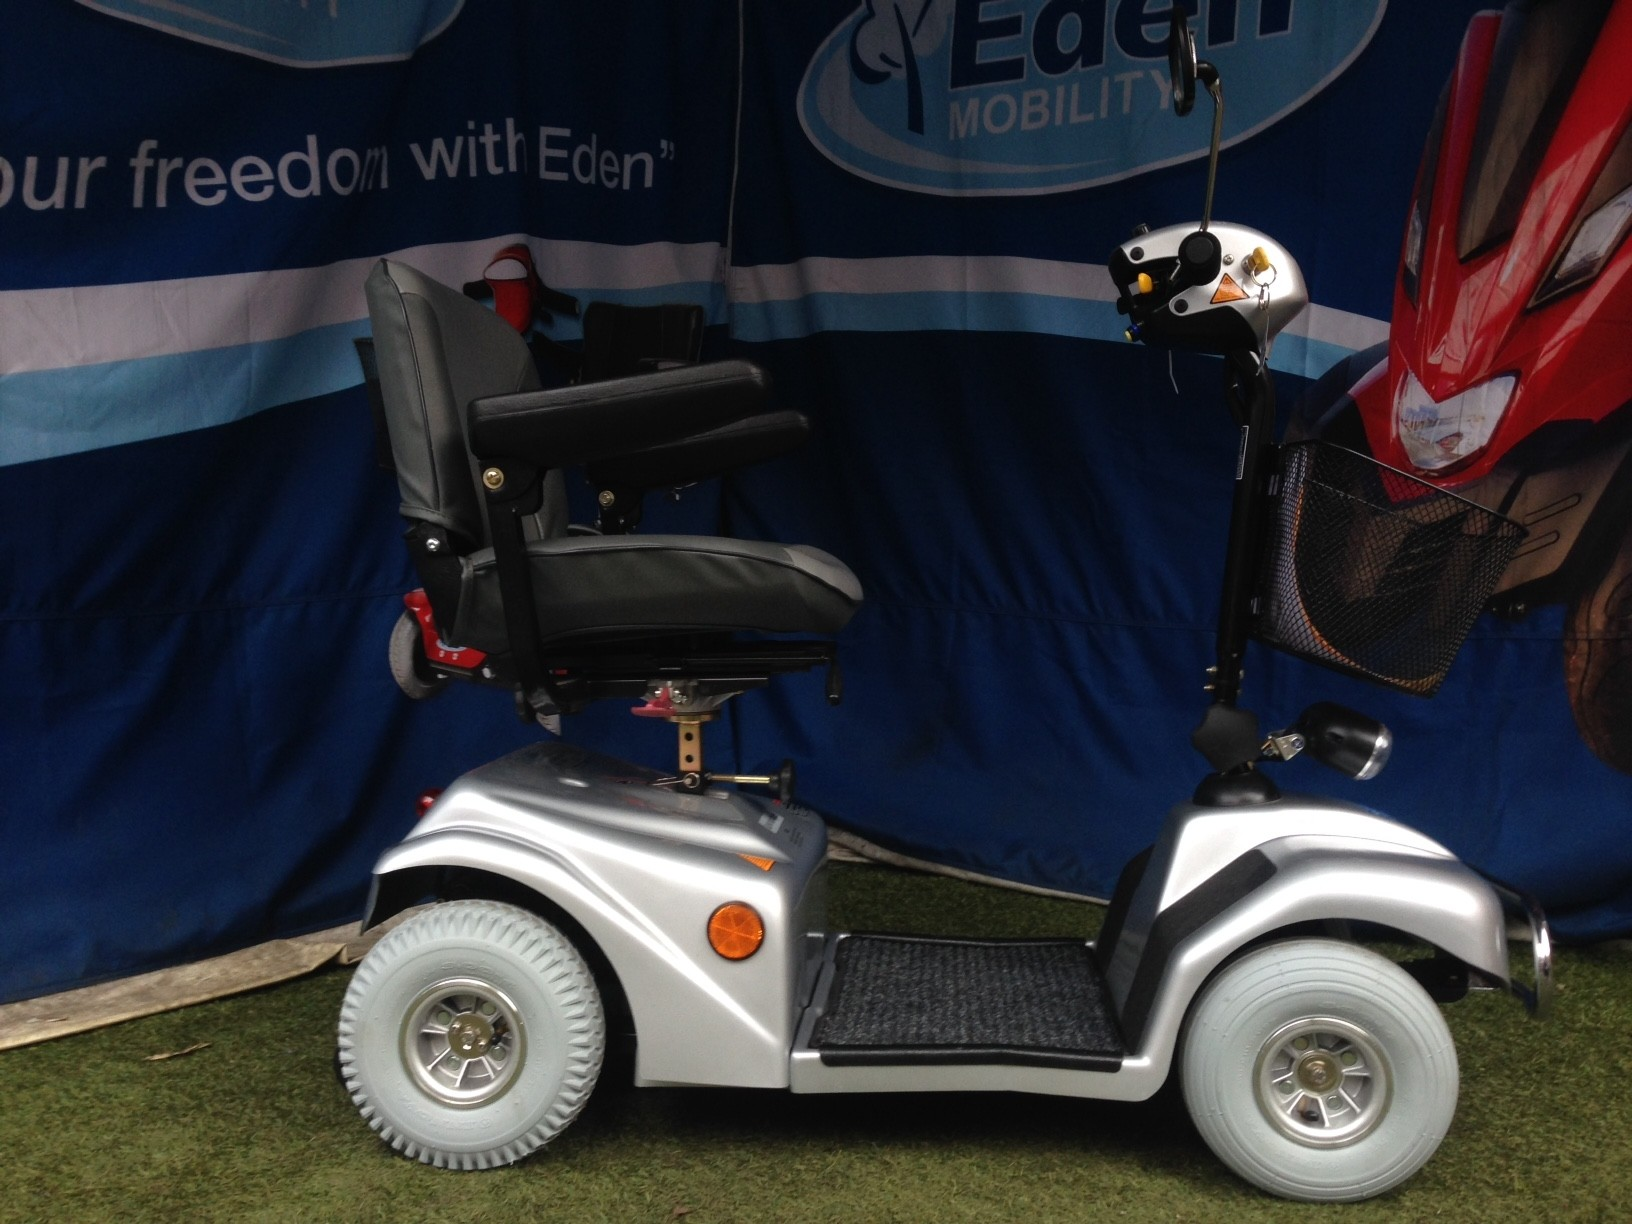 Electric Mobility Rascal 388 Silver